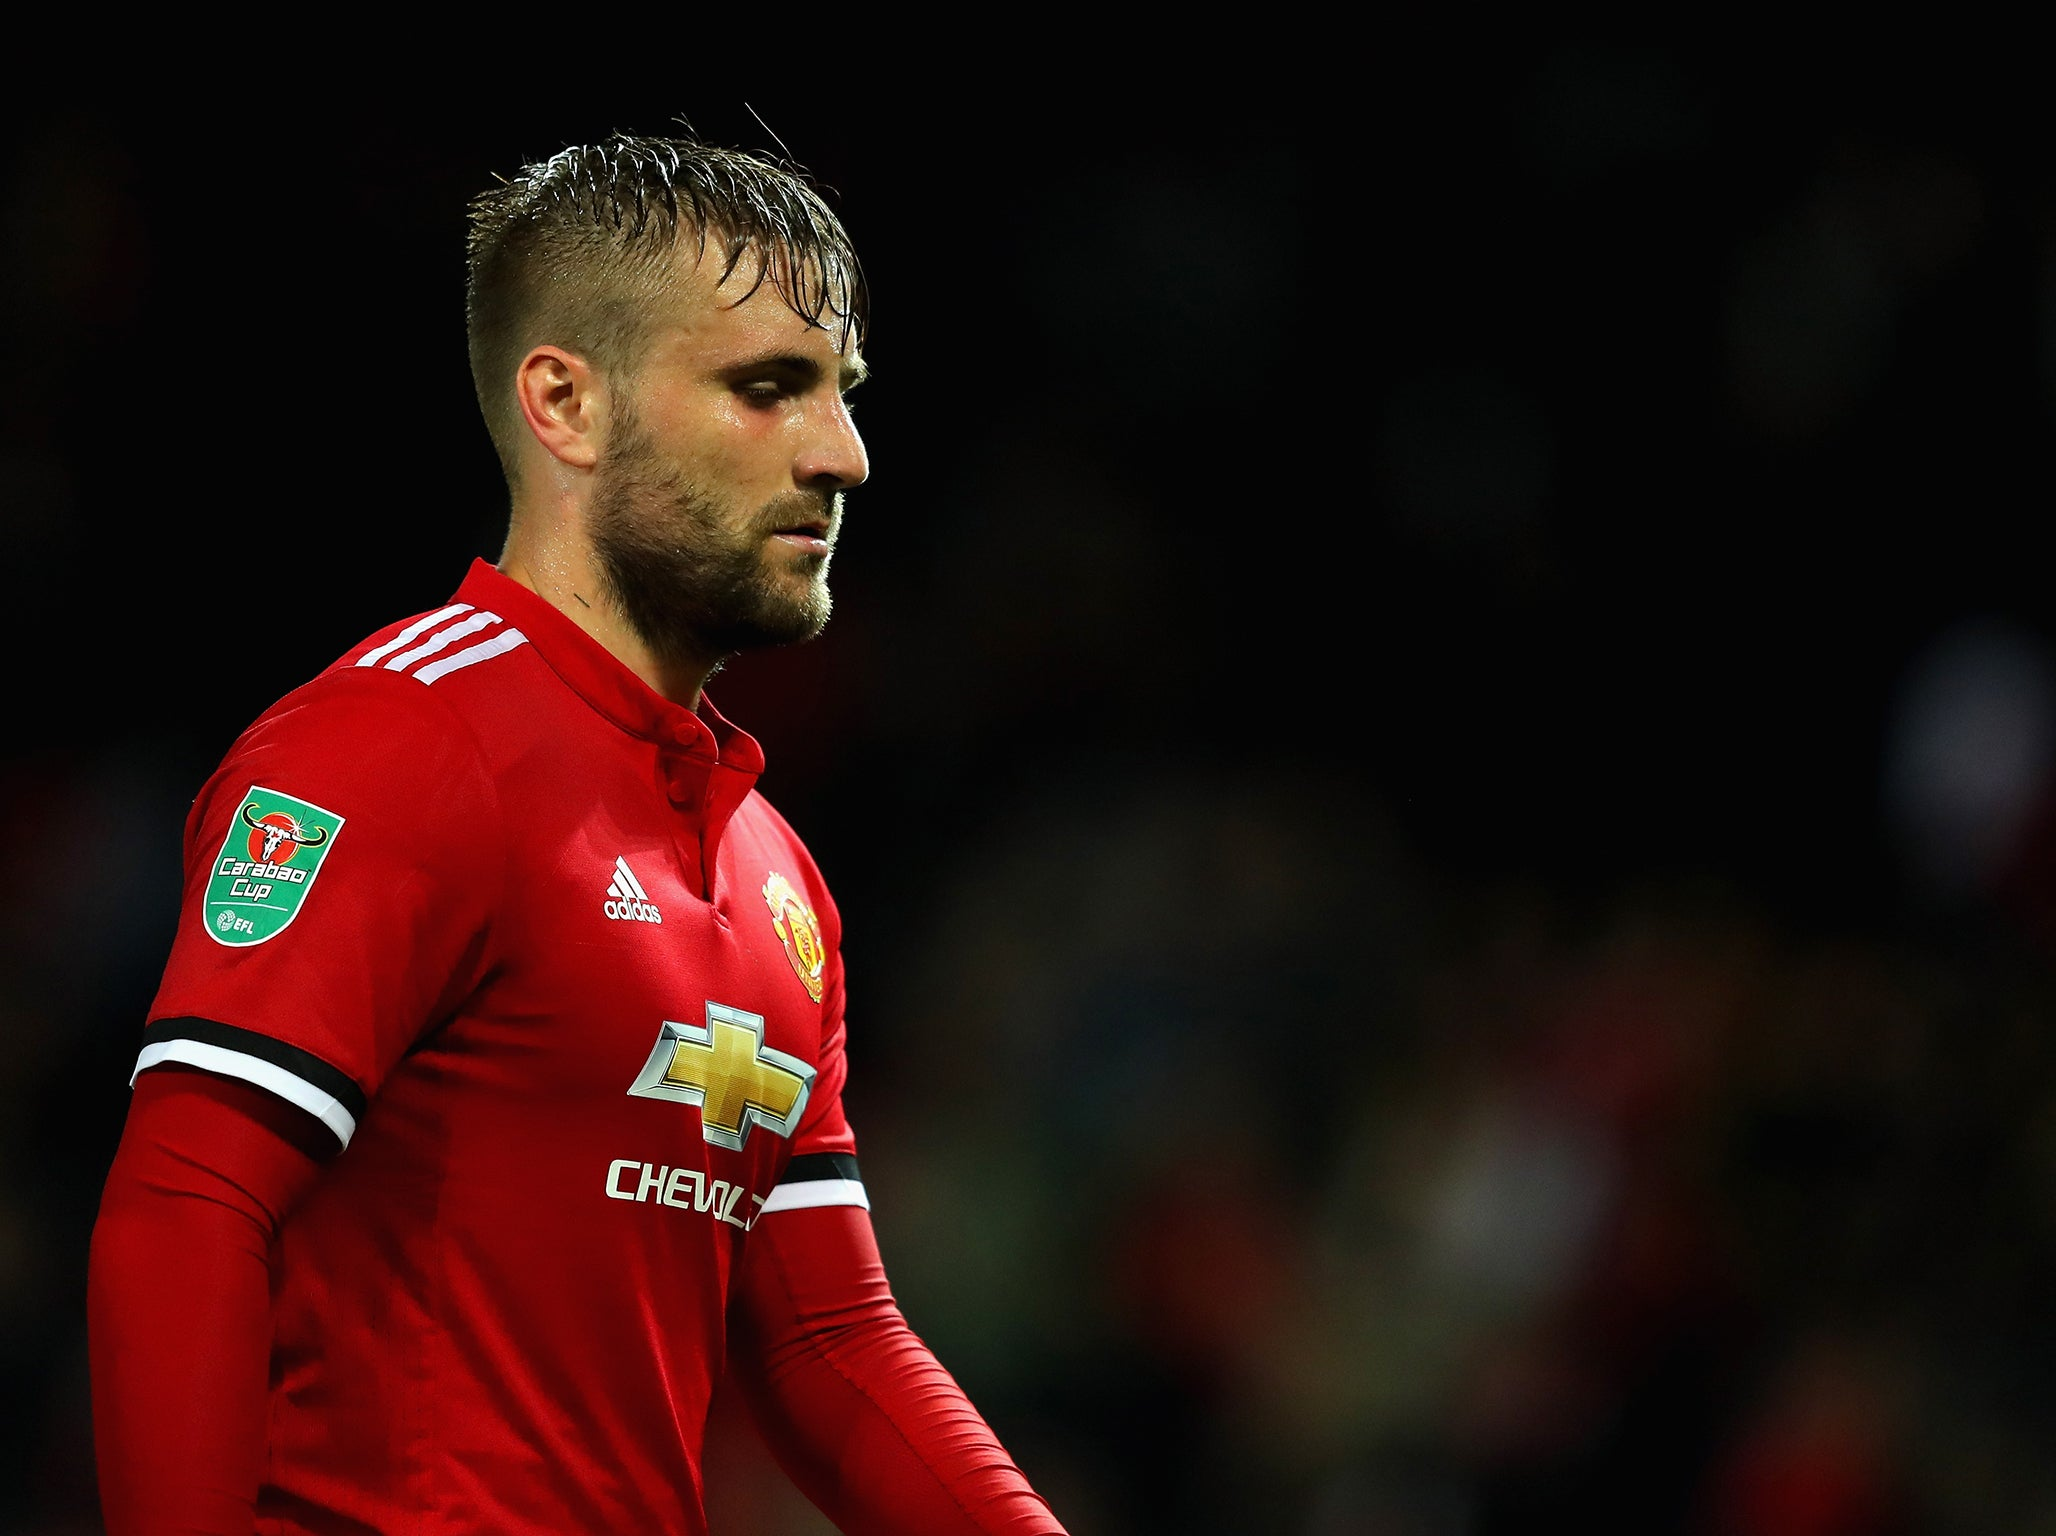 Luke Shaw should leave Manchester United if he wants to realise